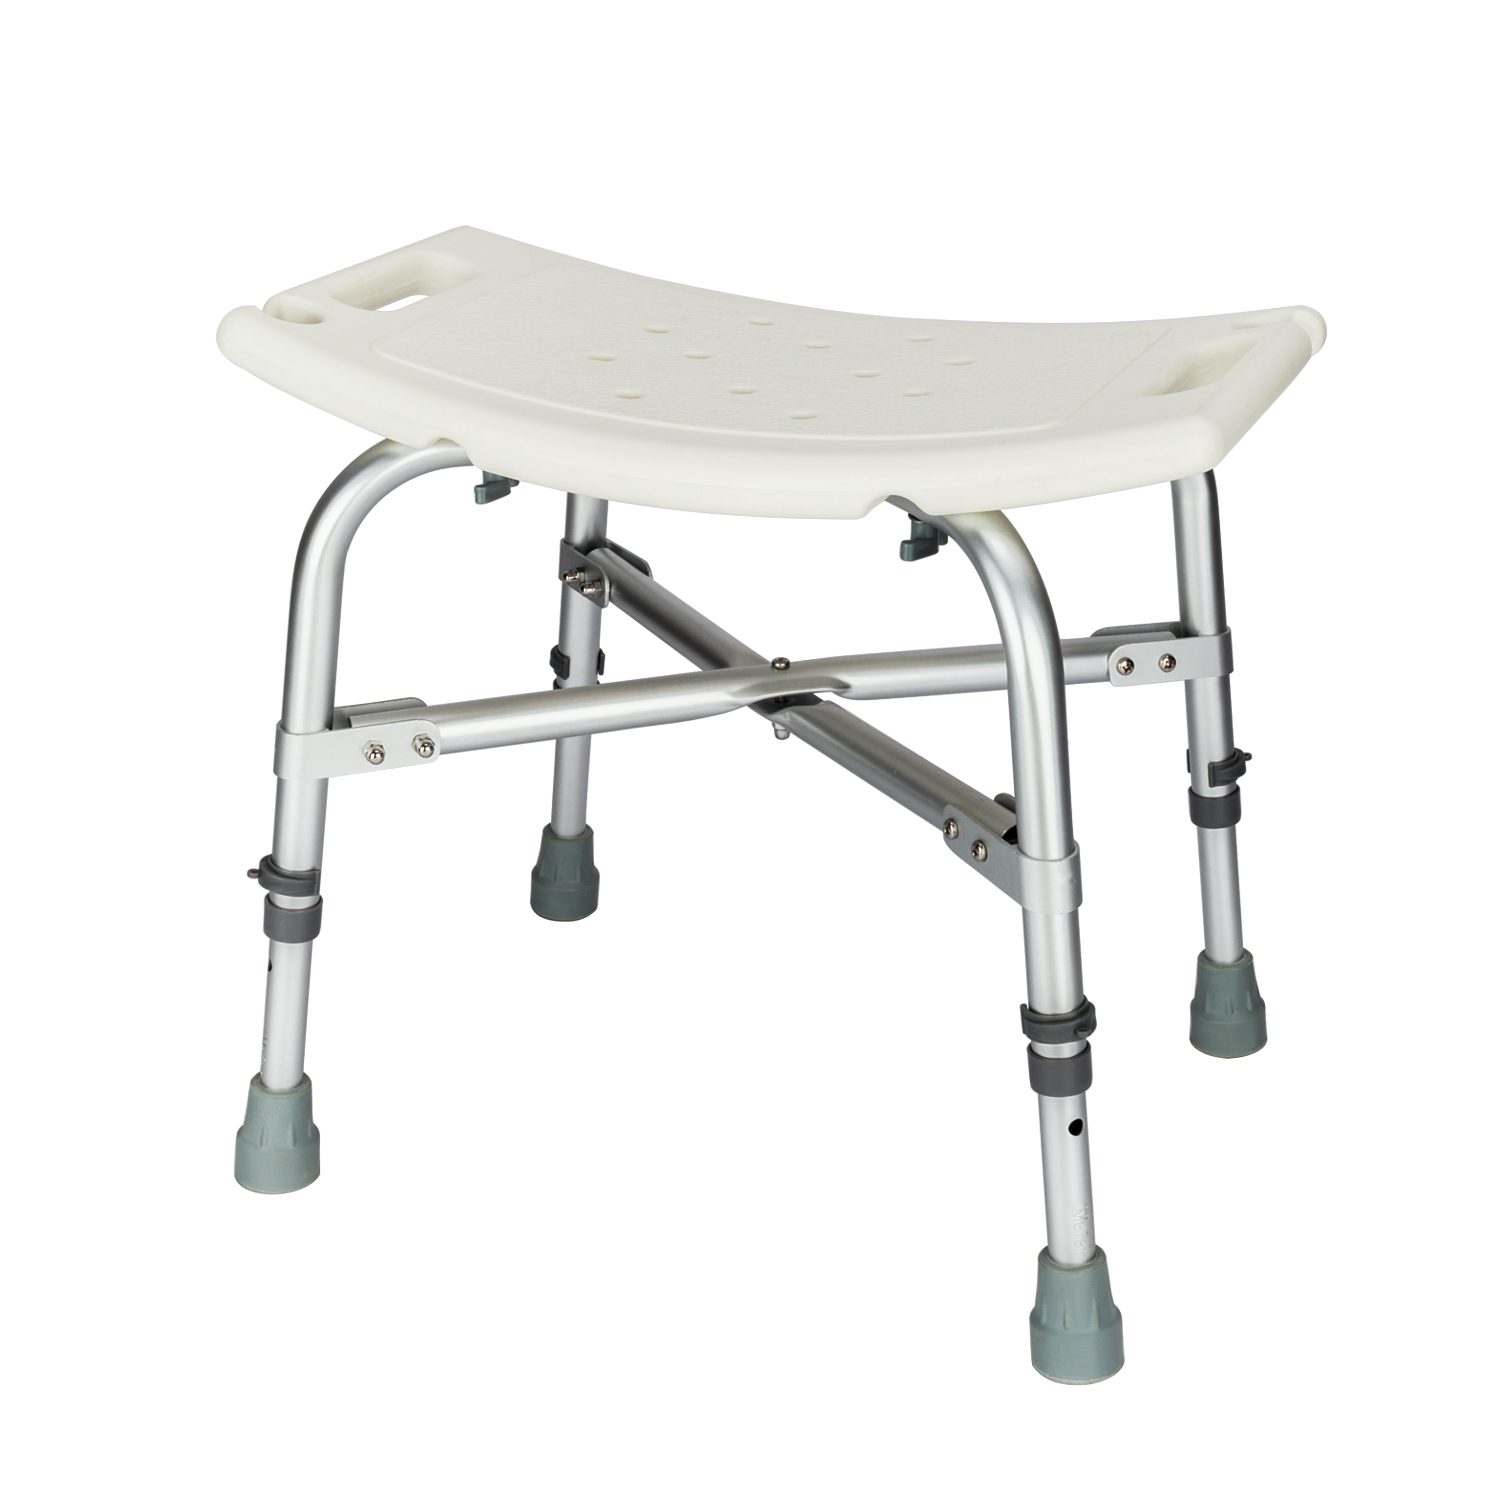 Chair For Bathtub Adjustable Medical Heavy Duty Bathtub Chair Bath Bench